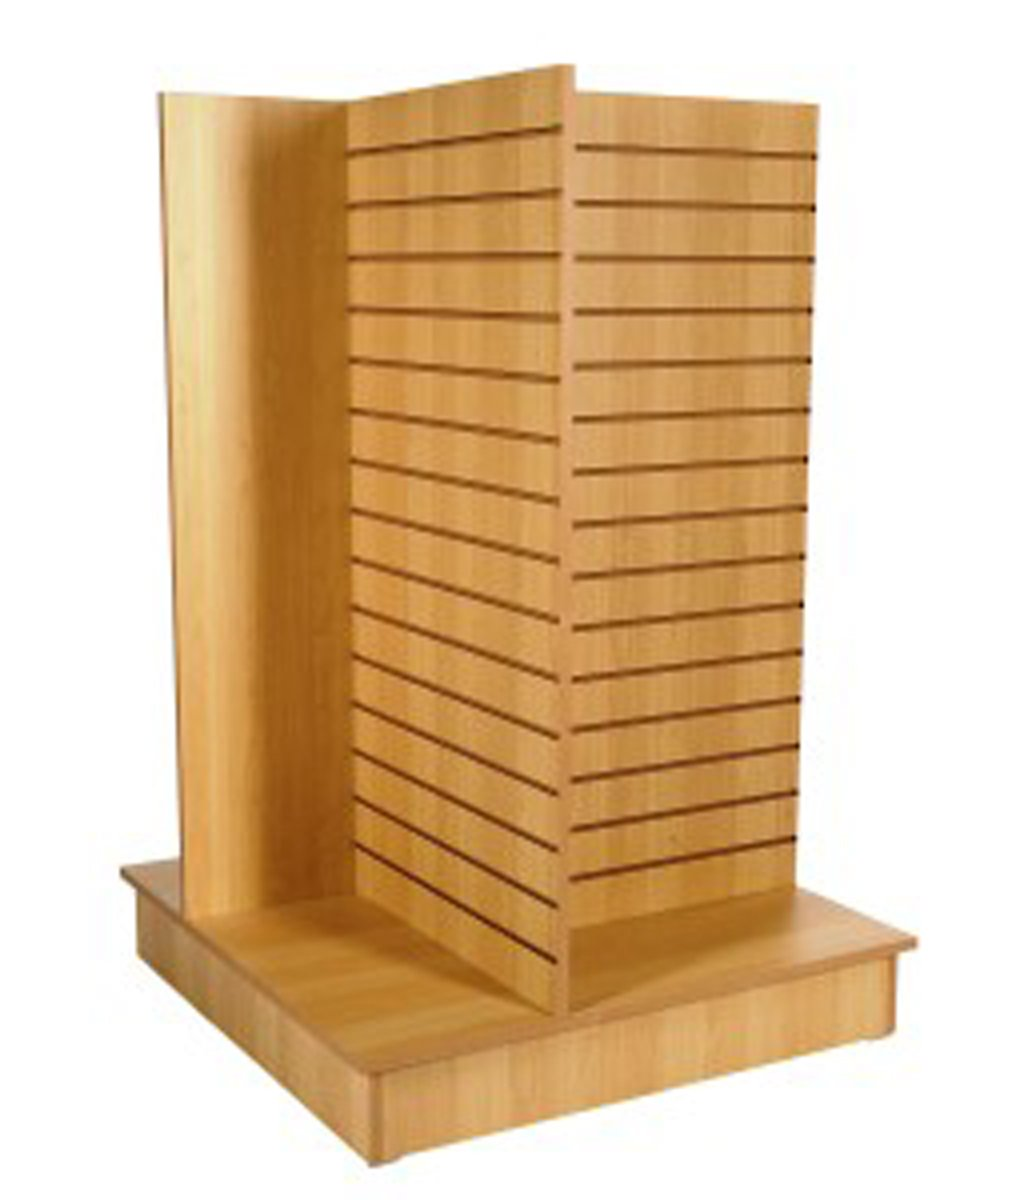 4-Way Slatwall Gondola Merchandise Display Retail Store Knockdown Maple 54''H New